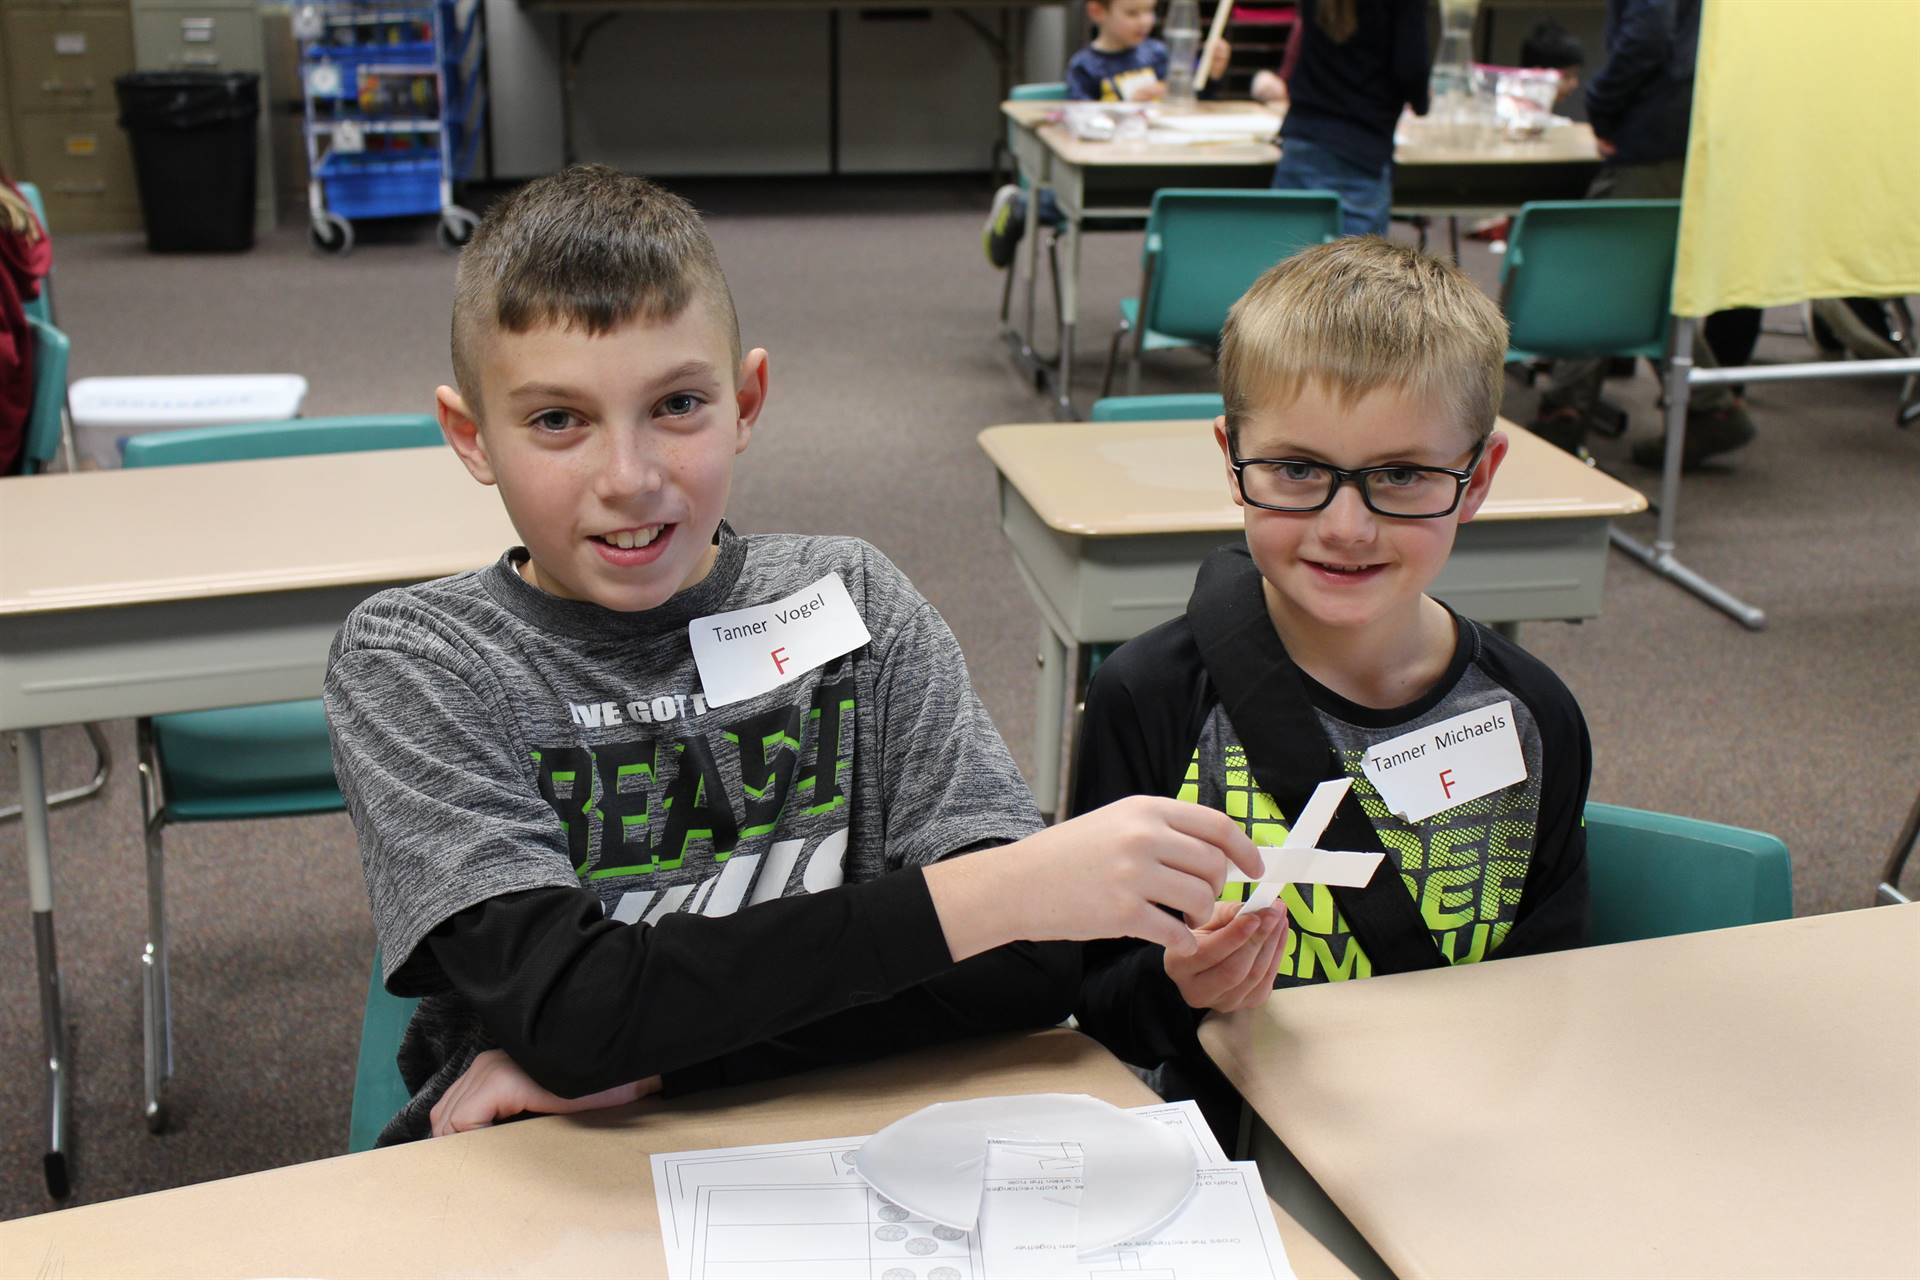 Two students building a spinning device